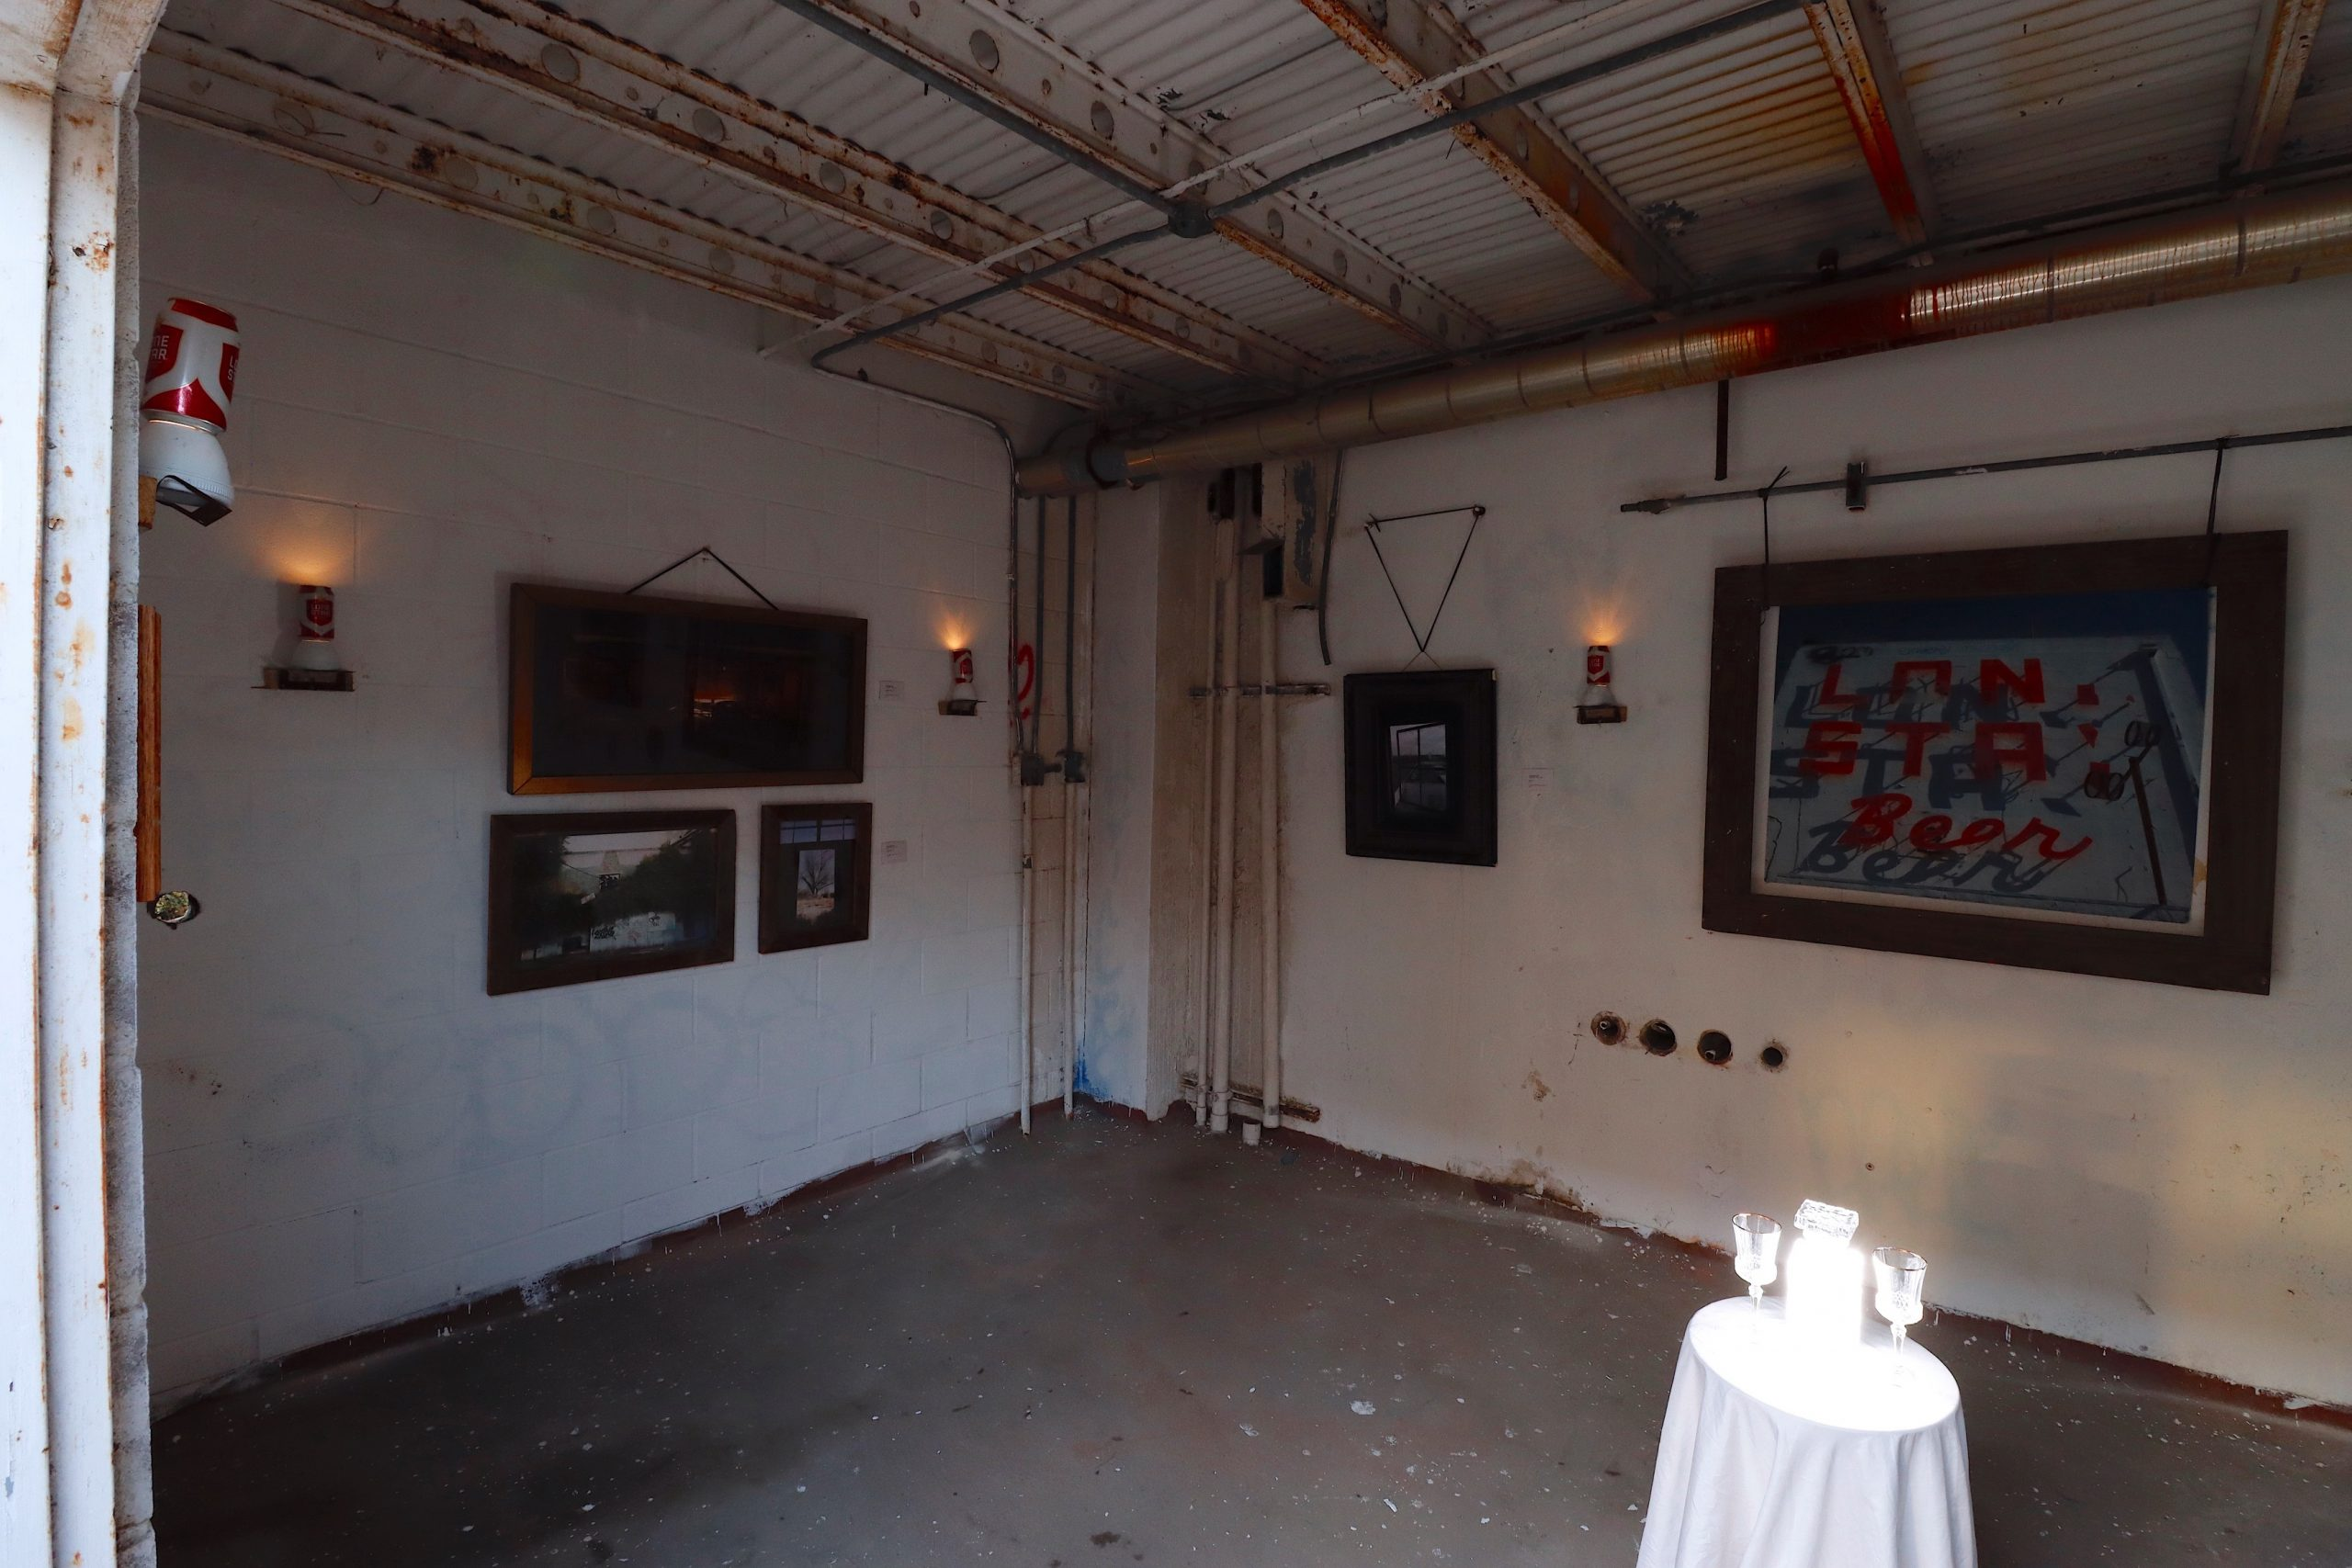 Finished and framed artwork hangs in the Krook Gallery at Lonestar Brewery upon completion.